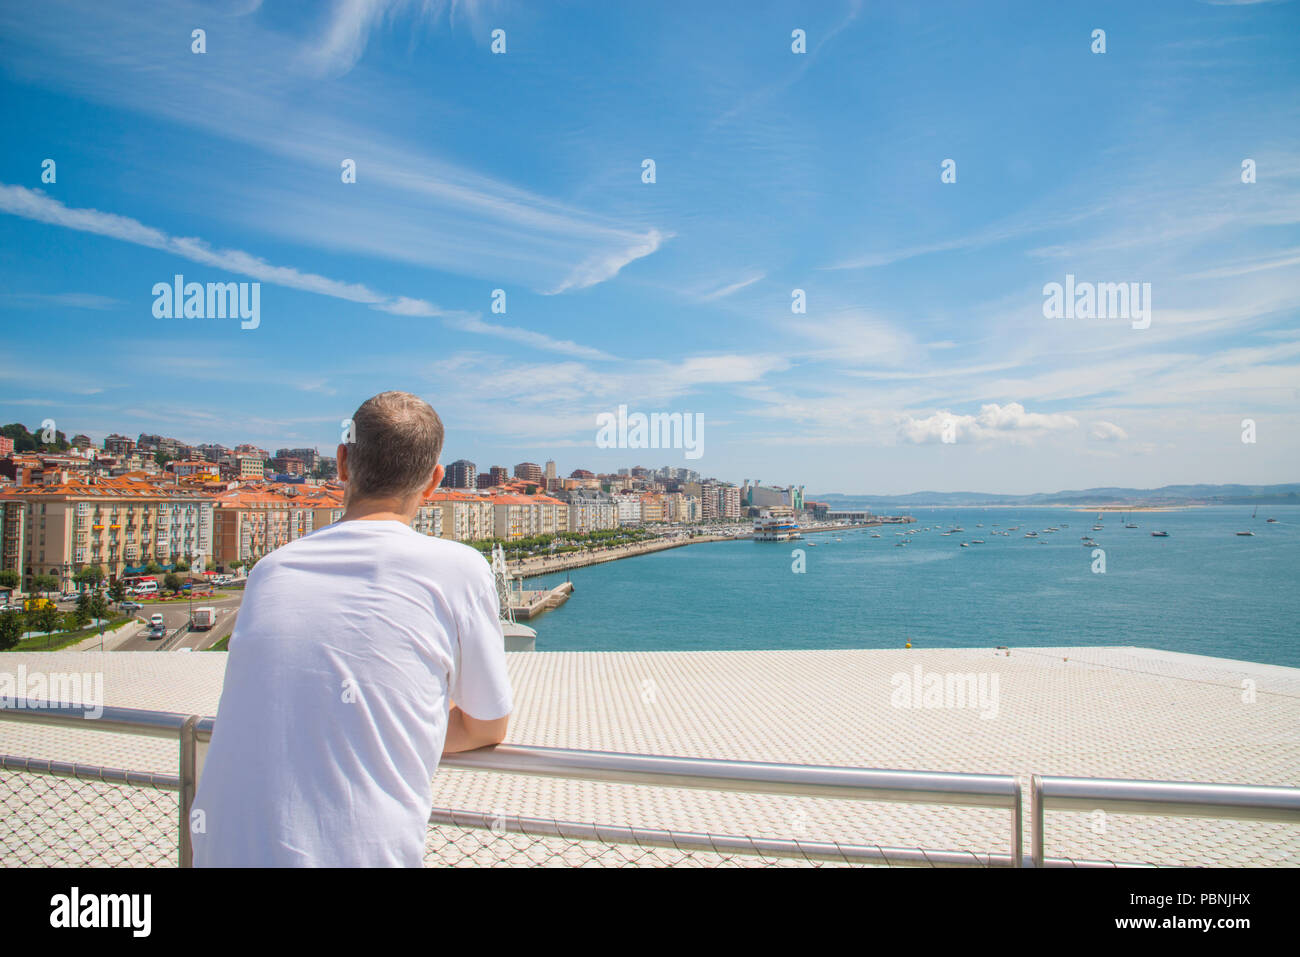 Man at the viewpoint over the city. Botin Center, Santander, Spain. - Stock Image